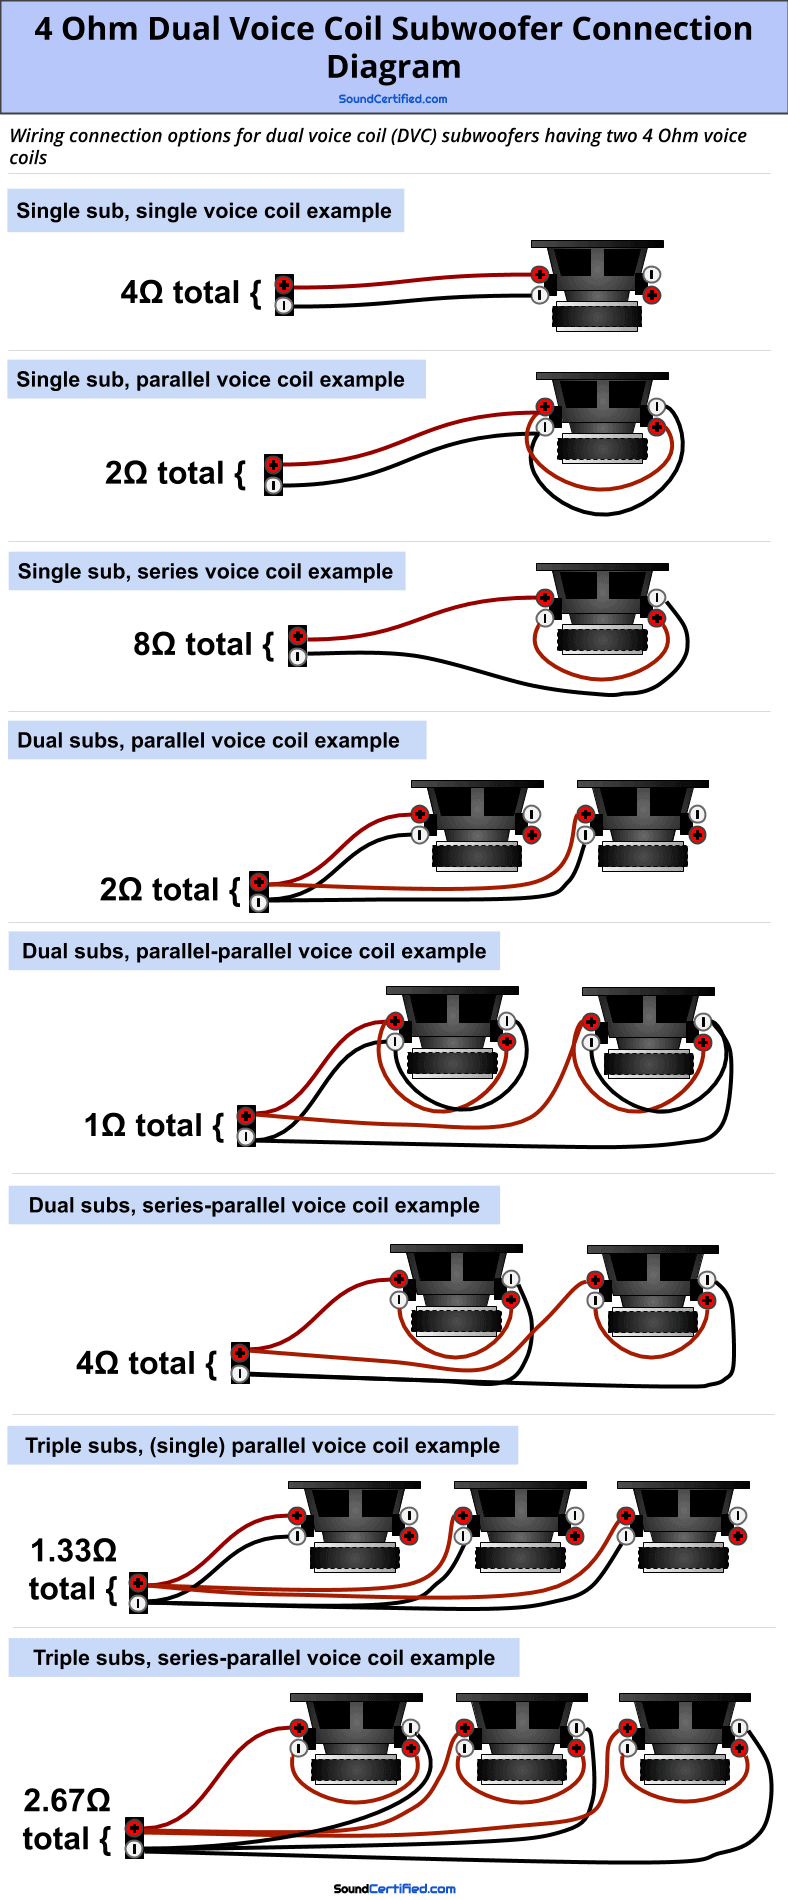 Bridged 4 Ohm Dual Voice Coil Wiring Diagram Manual Guide